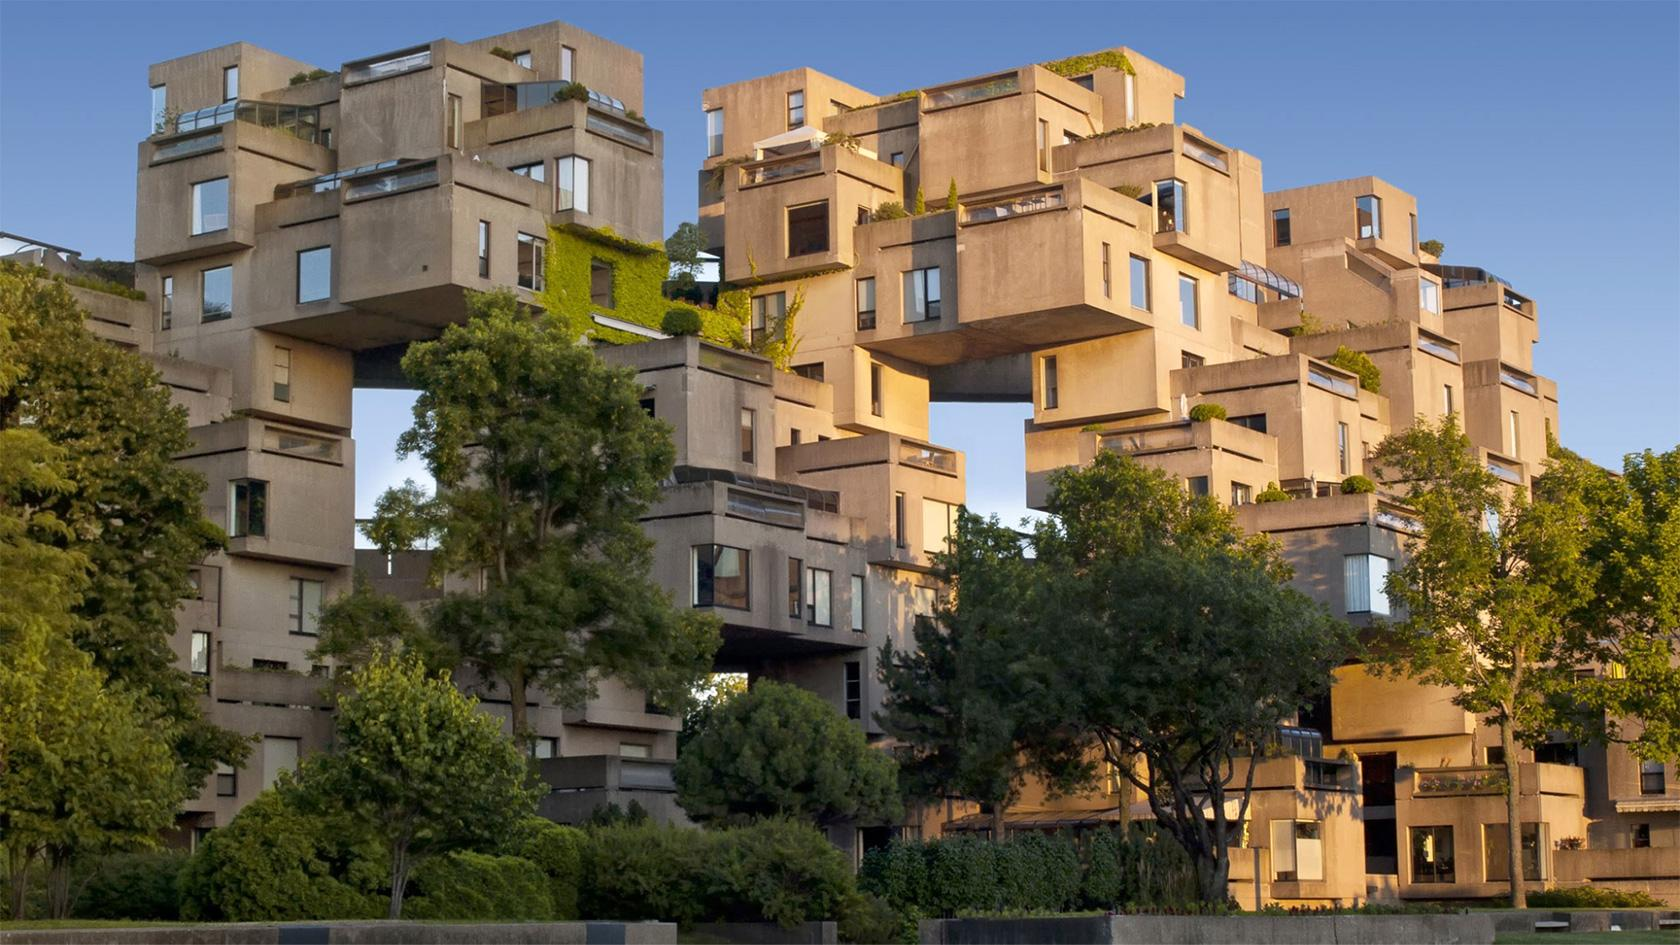 Habitat 67 housing complex in Montreal built in brutalist style